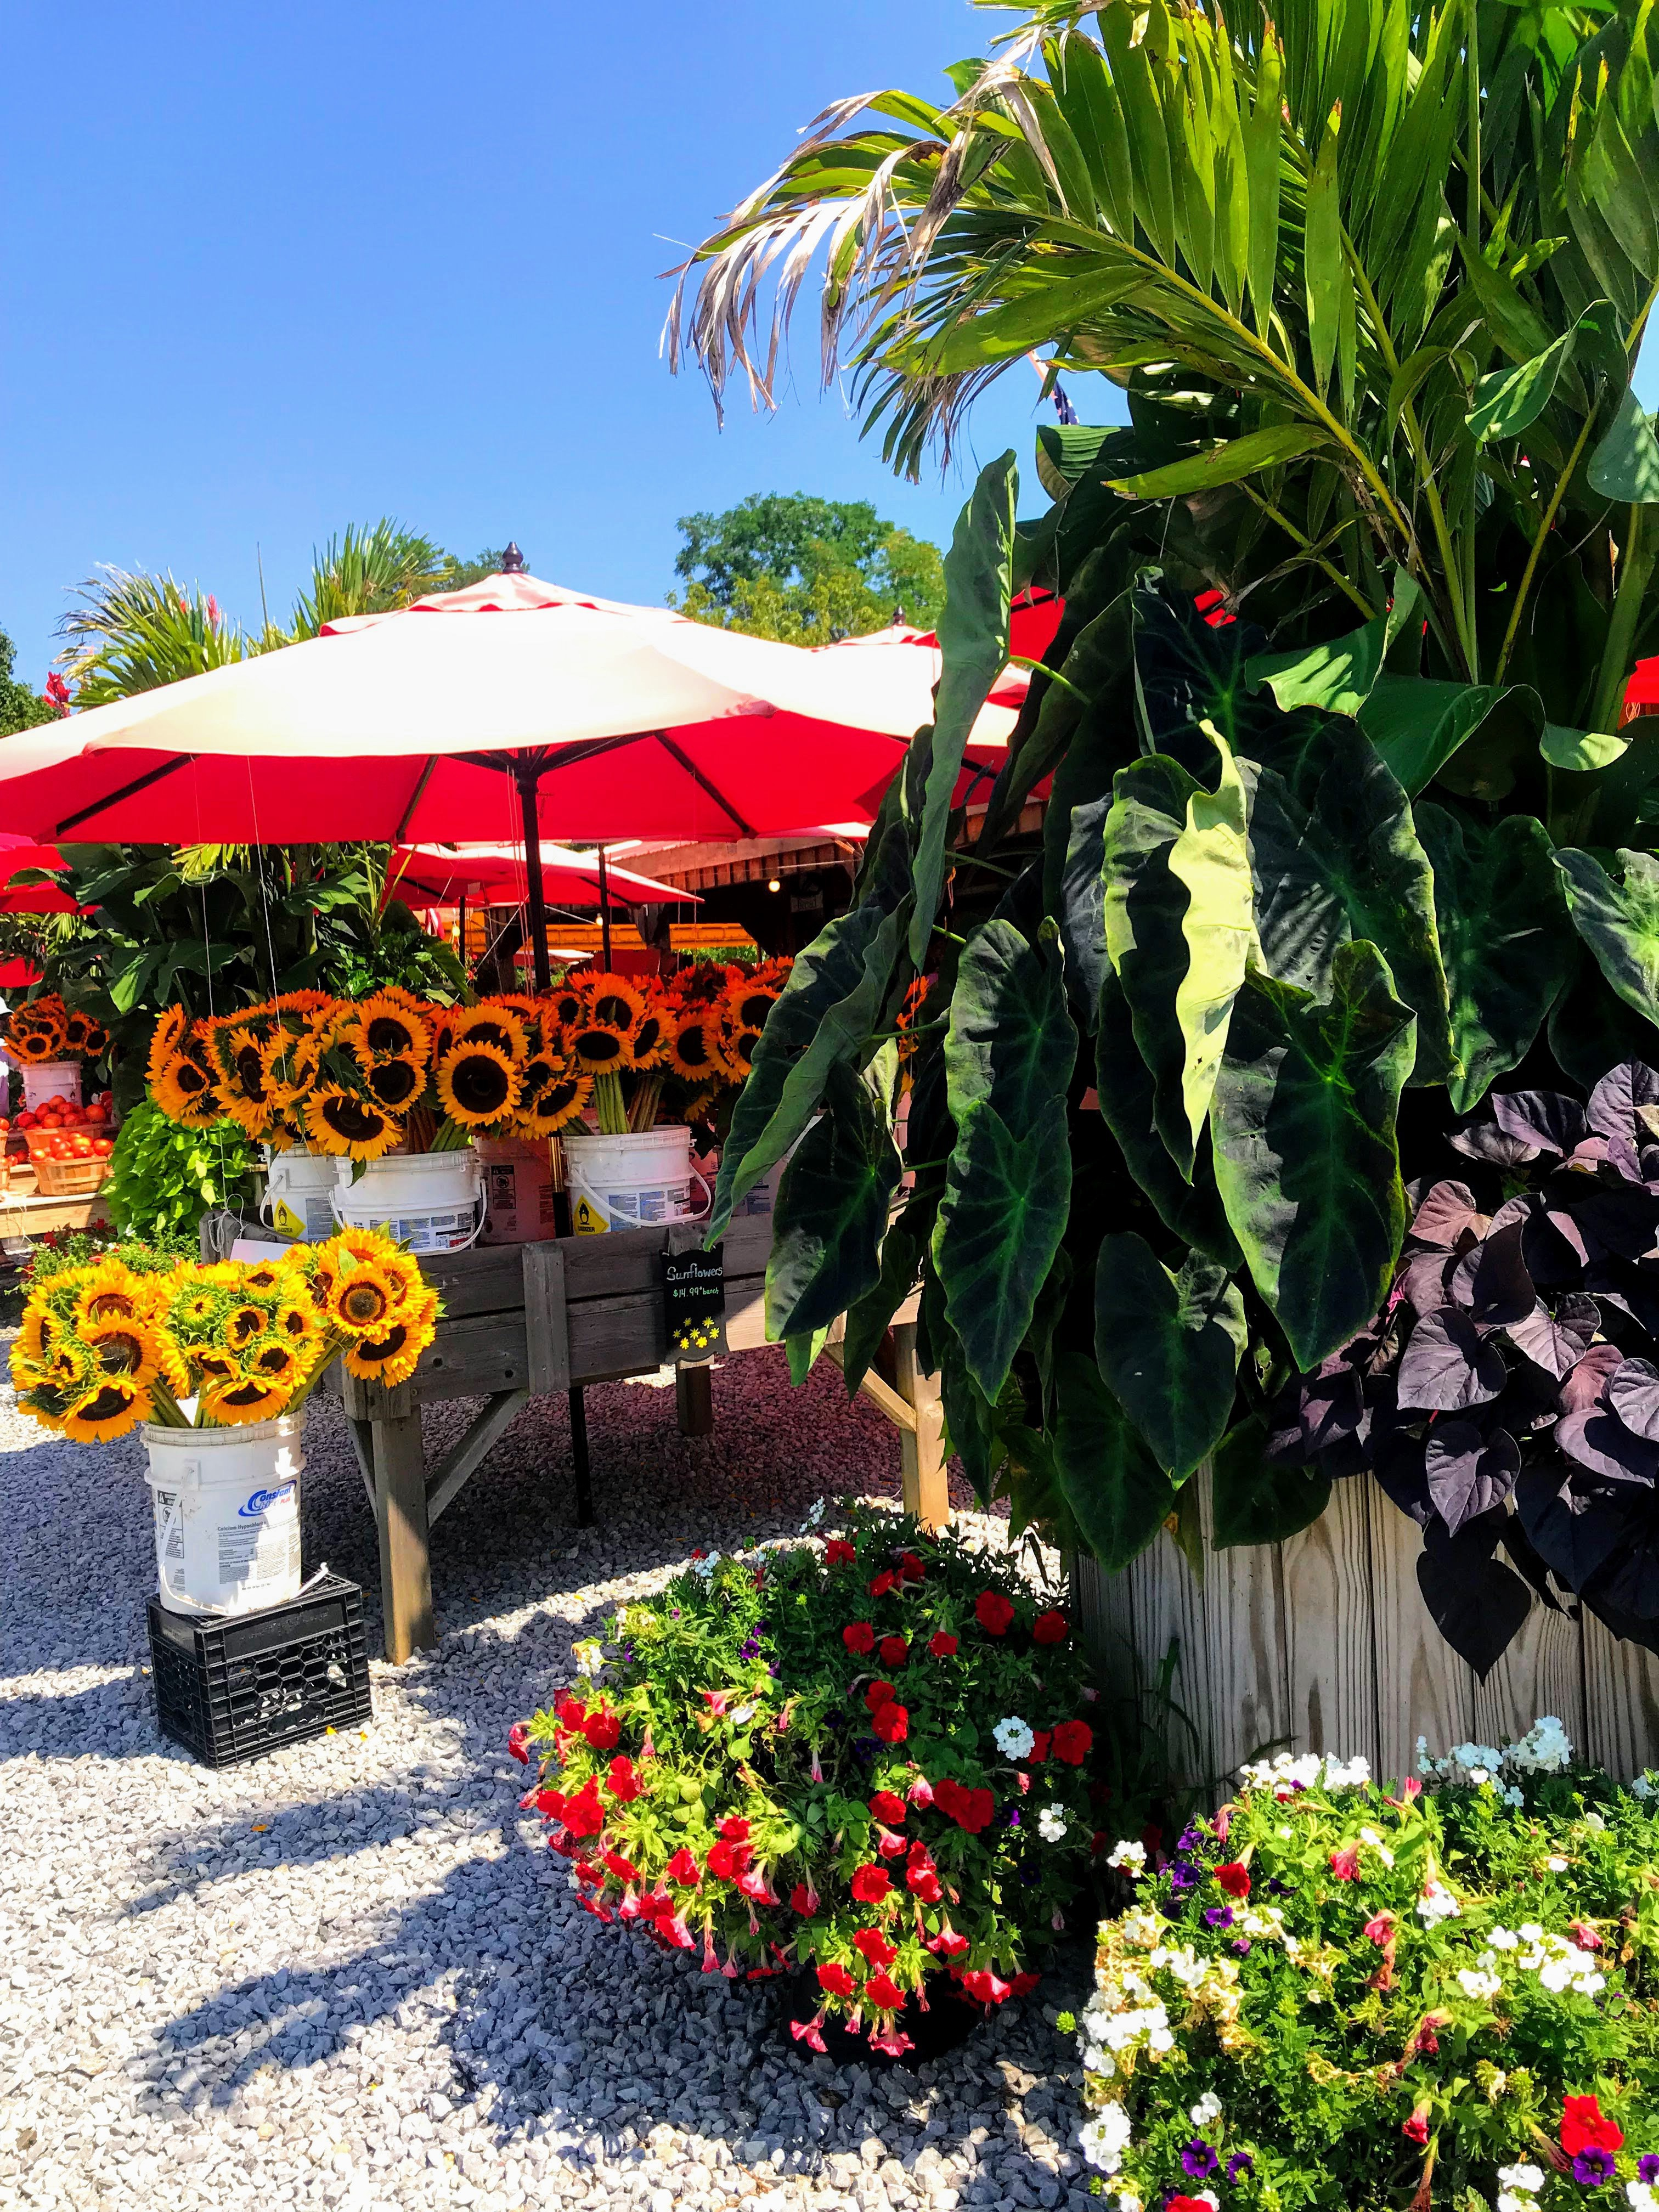 Farm Stands are common to see around the North Fork AVA wine trail